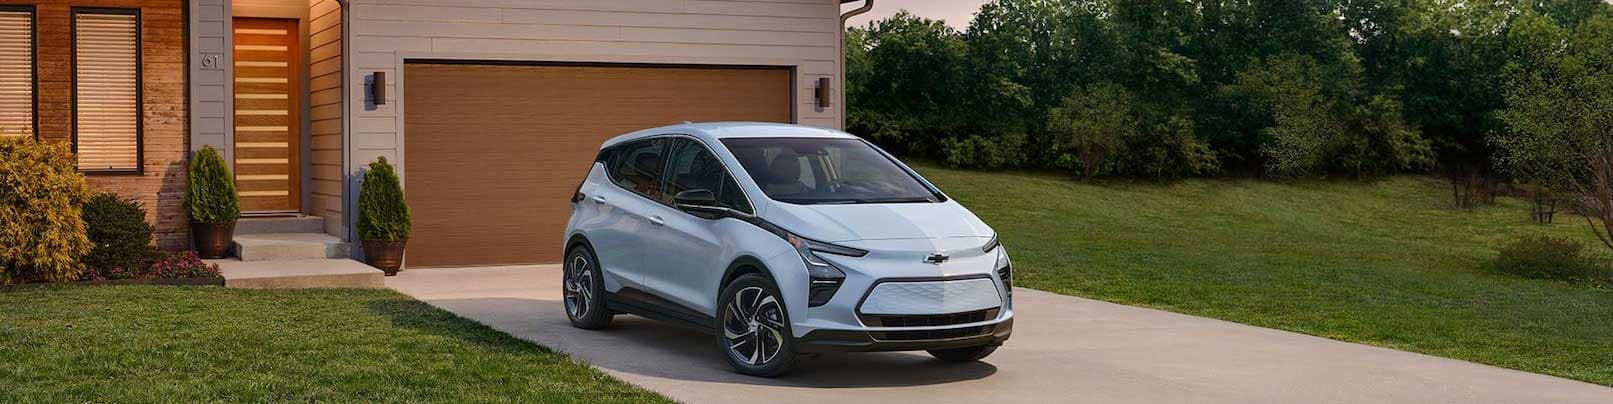 California Hybrid/EV Laws and Incentives